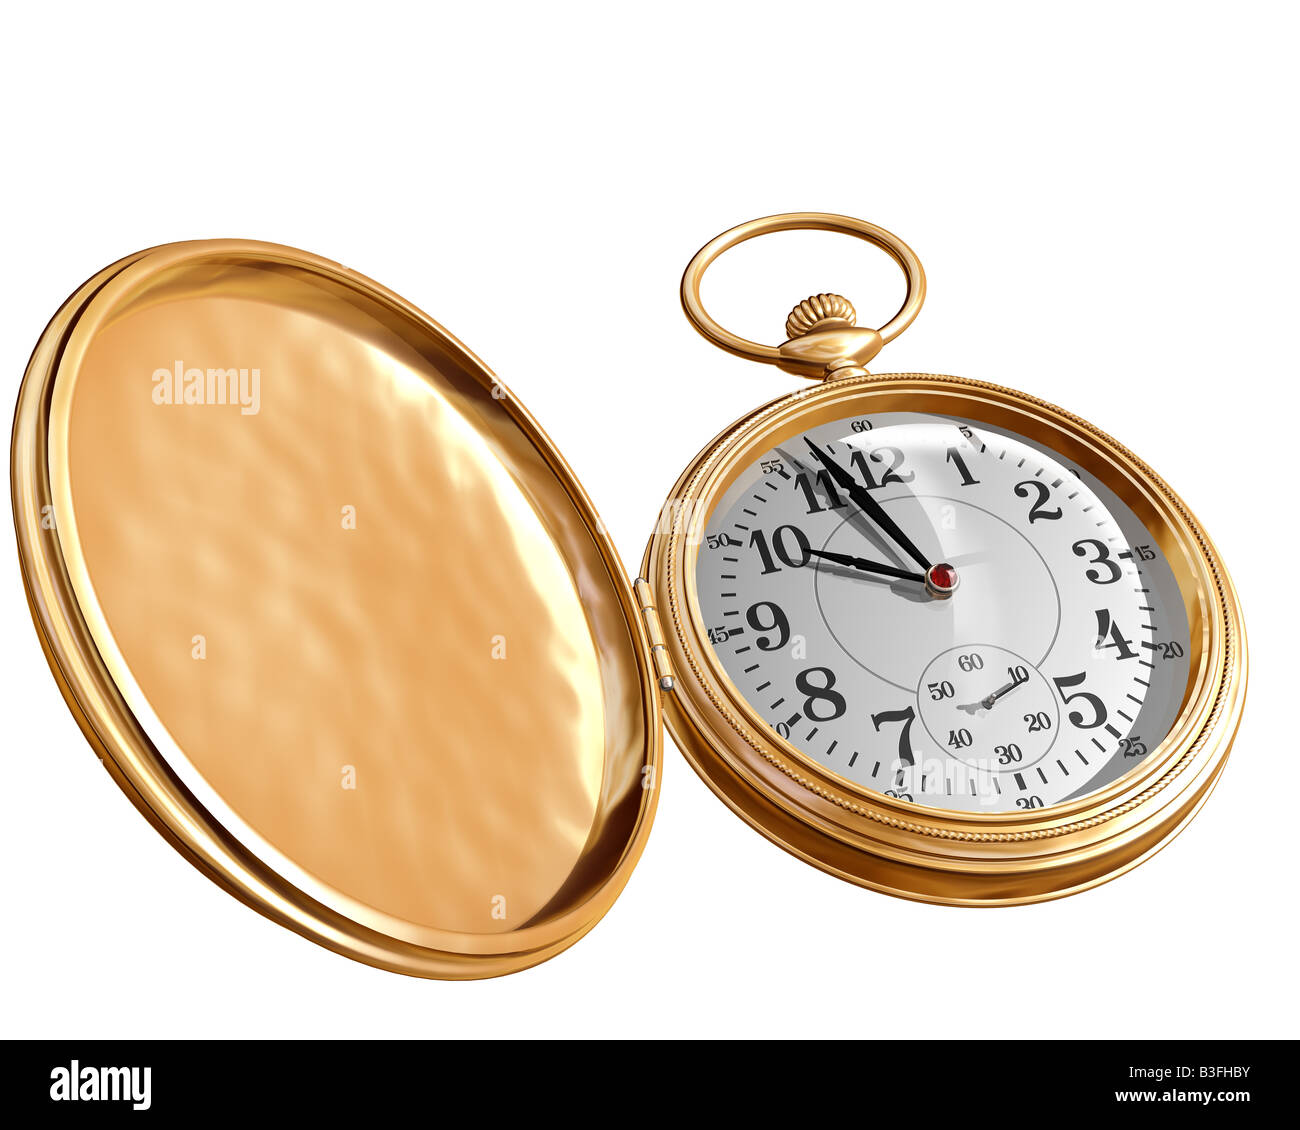 Isolated illustration of an open gold pocket watch - Stock Image